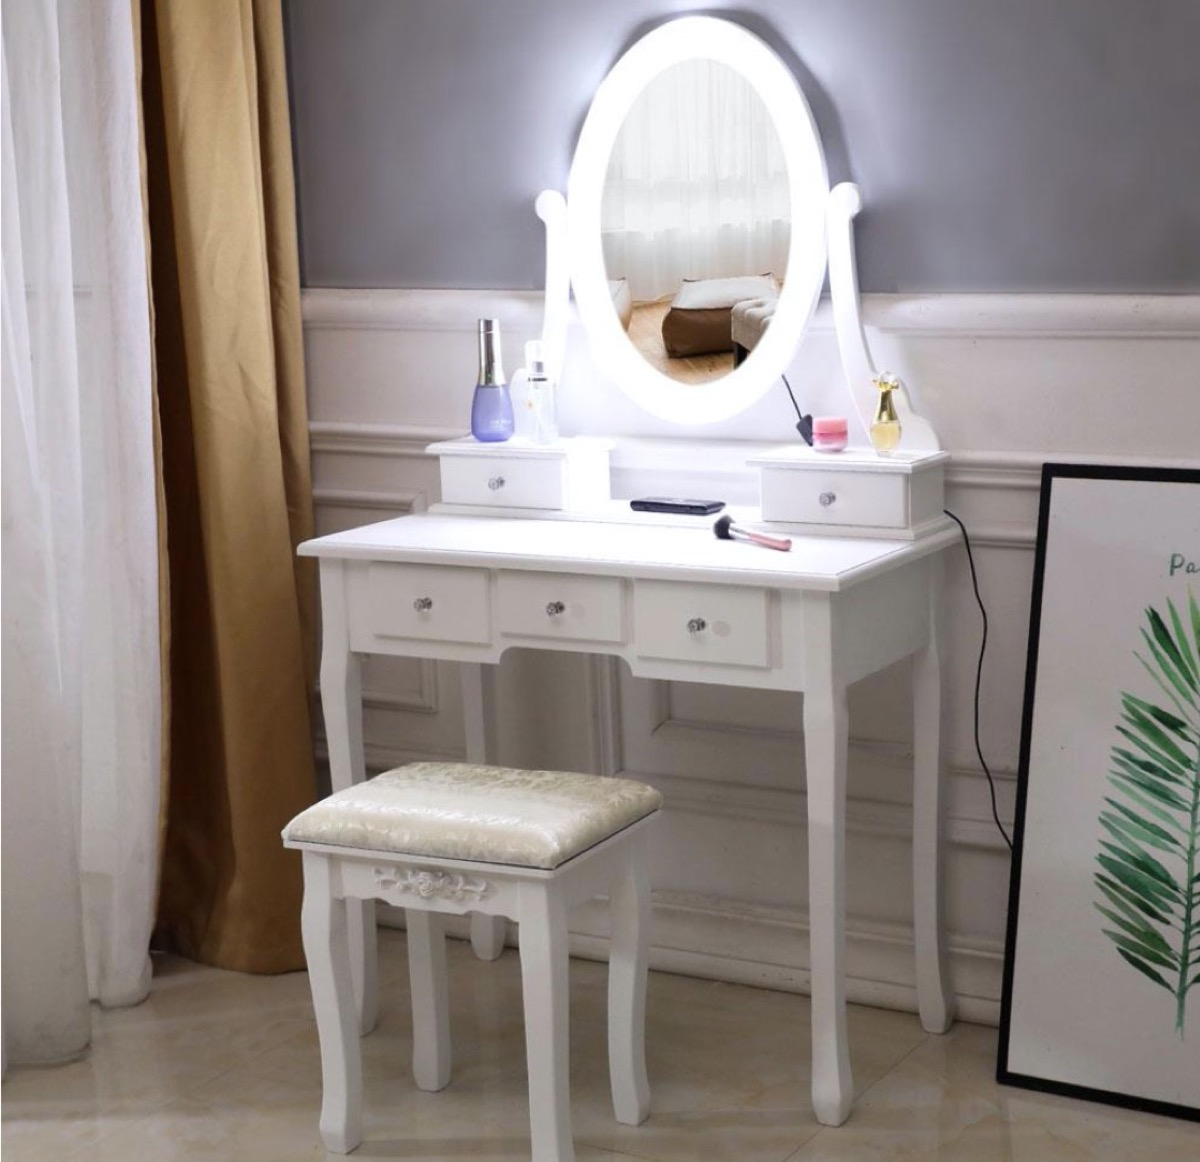 white vanity with oval mirror and LED lights